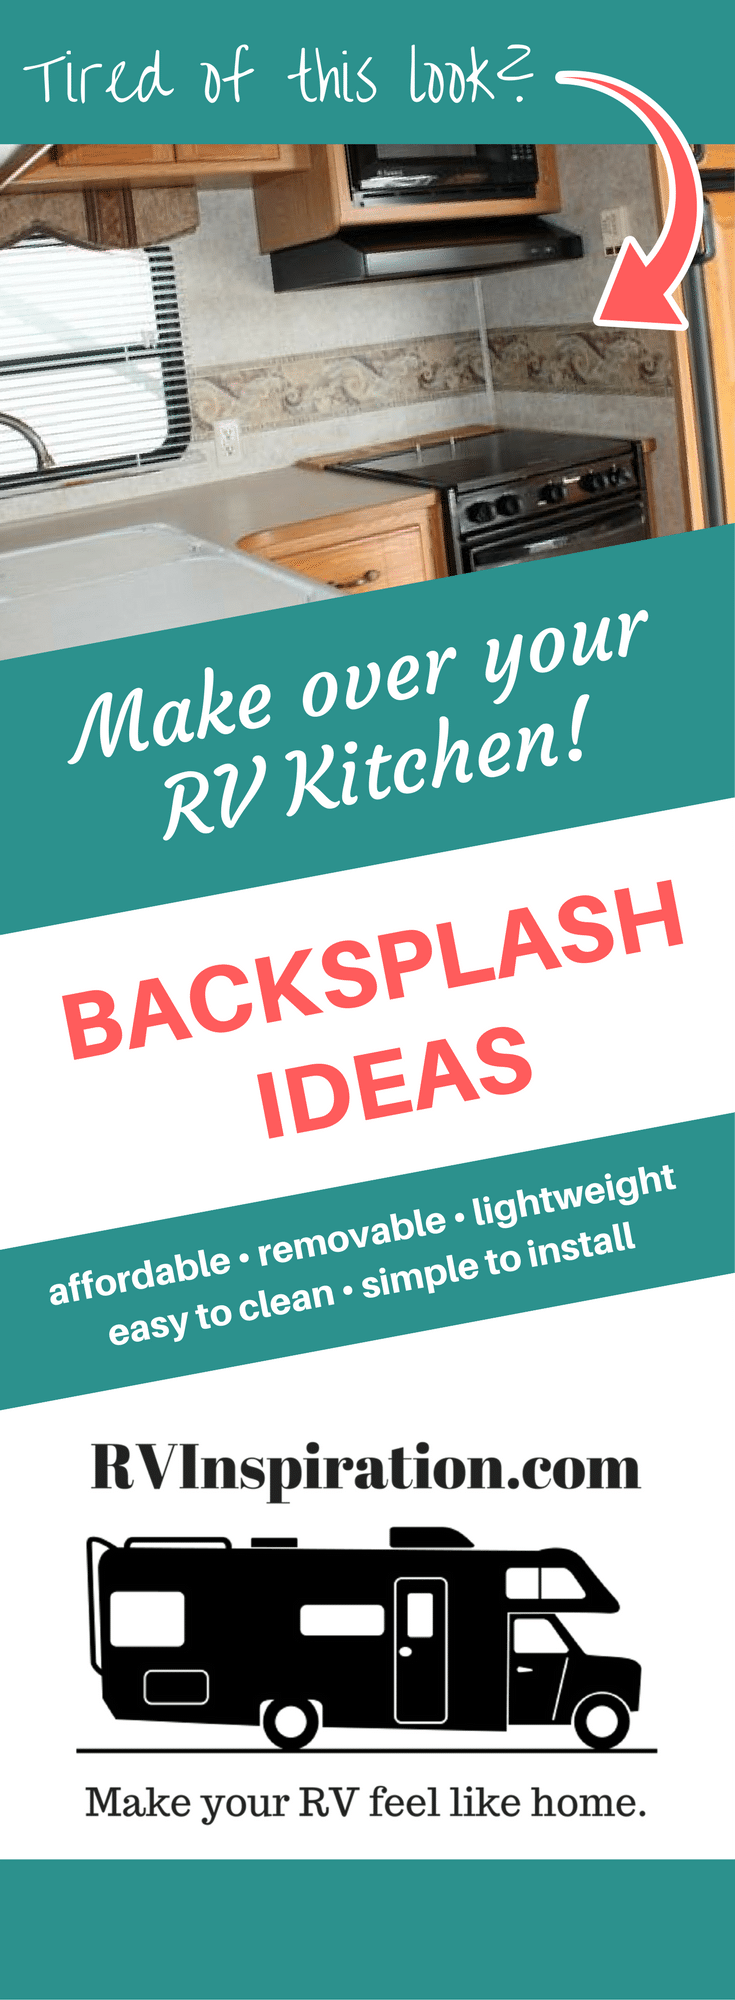 Lightweight, easy to install, removable backsplash ideas for a camper, motorhome, travel trailer, rental home, or apartment kitchen